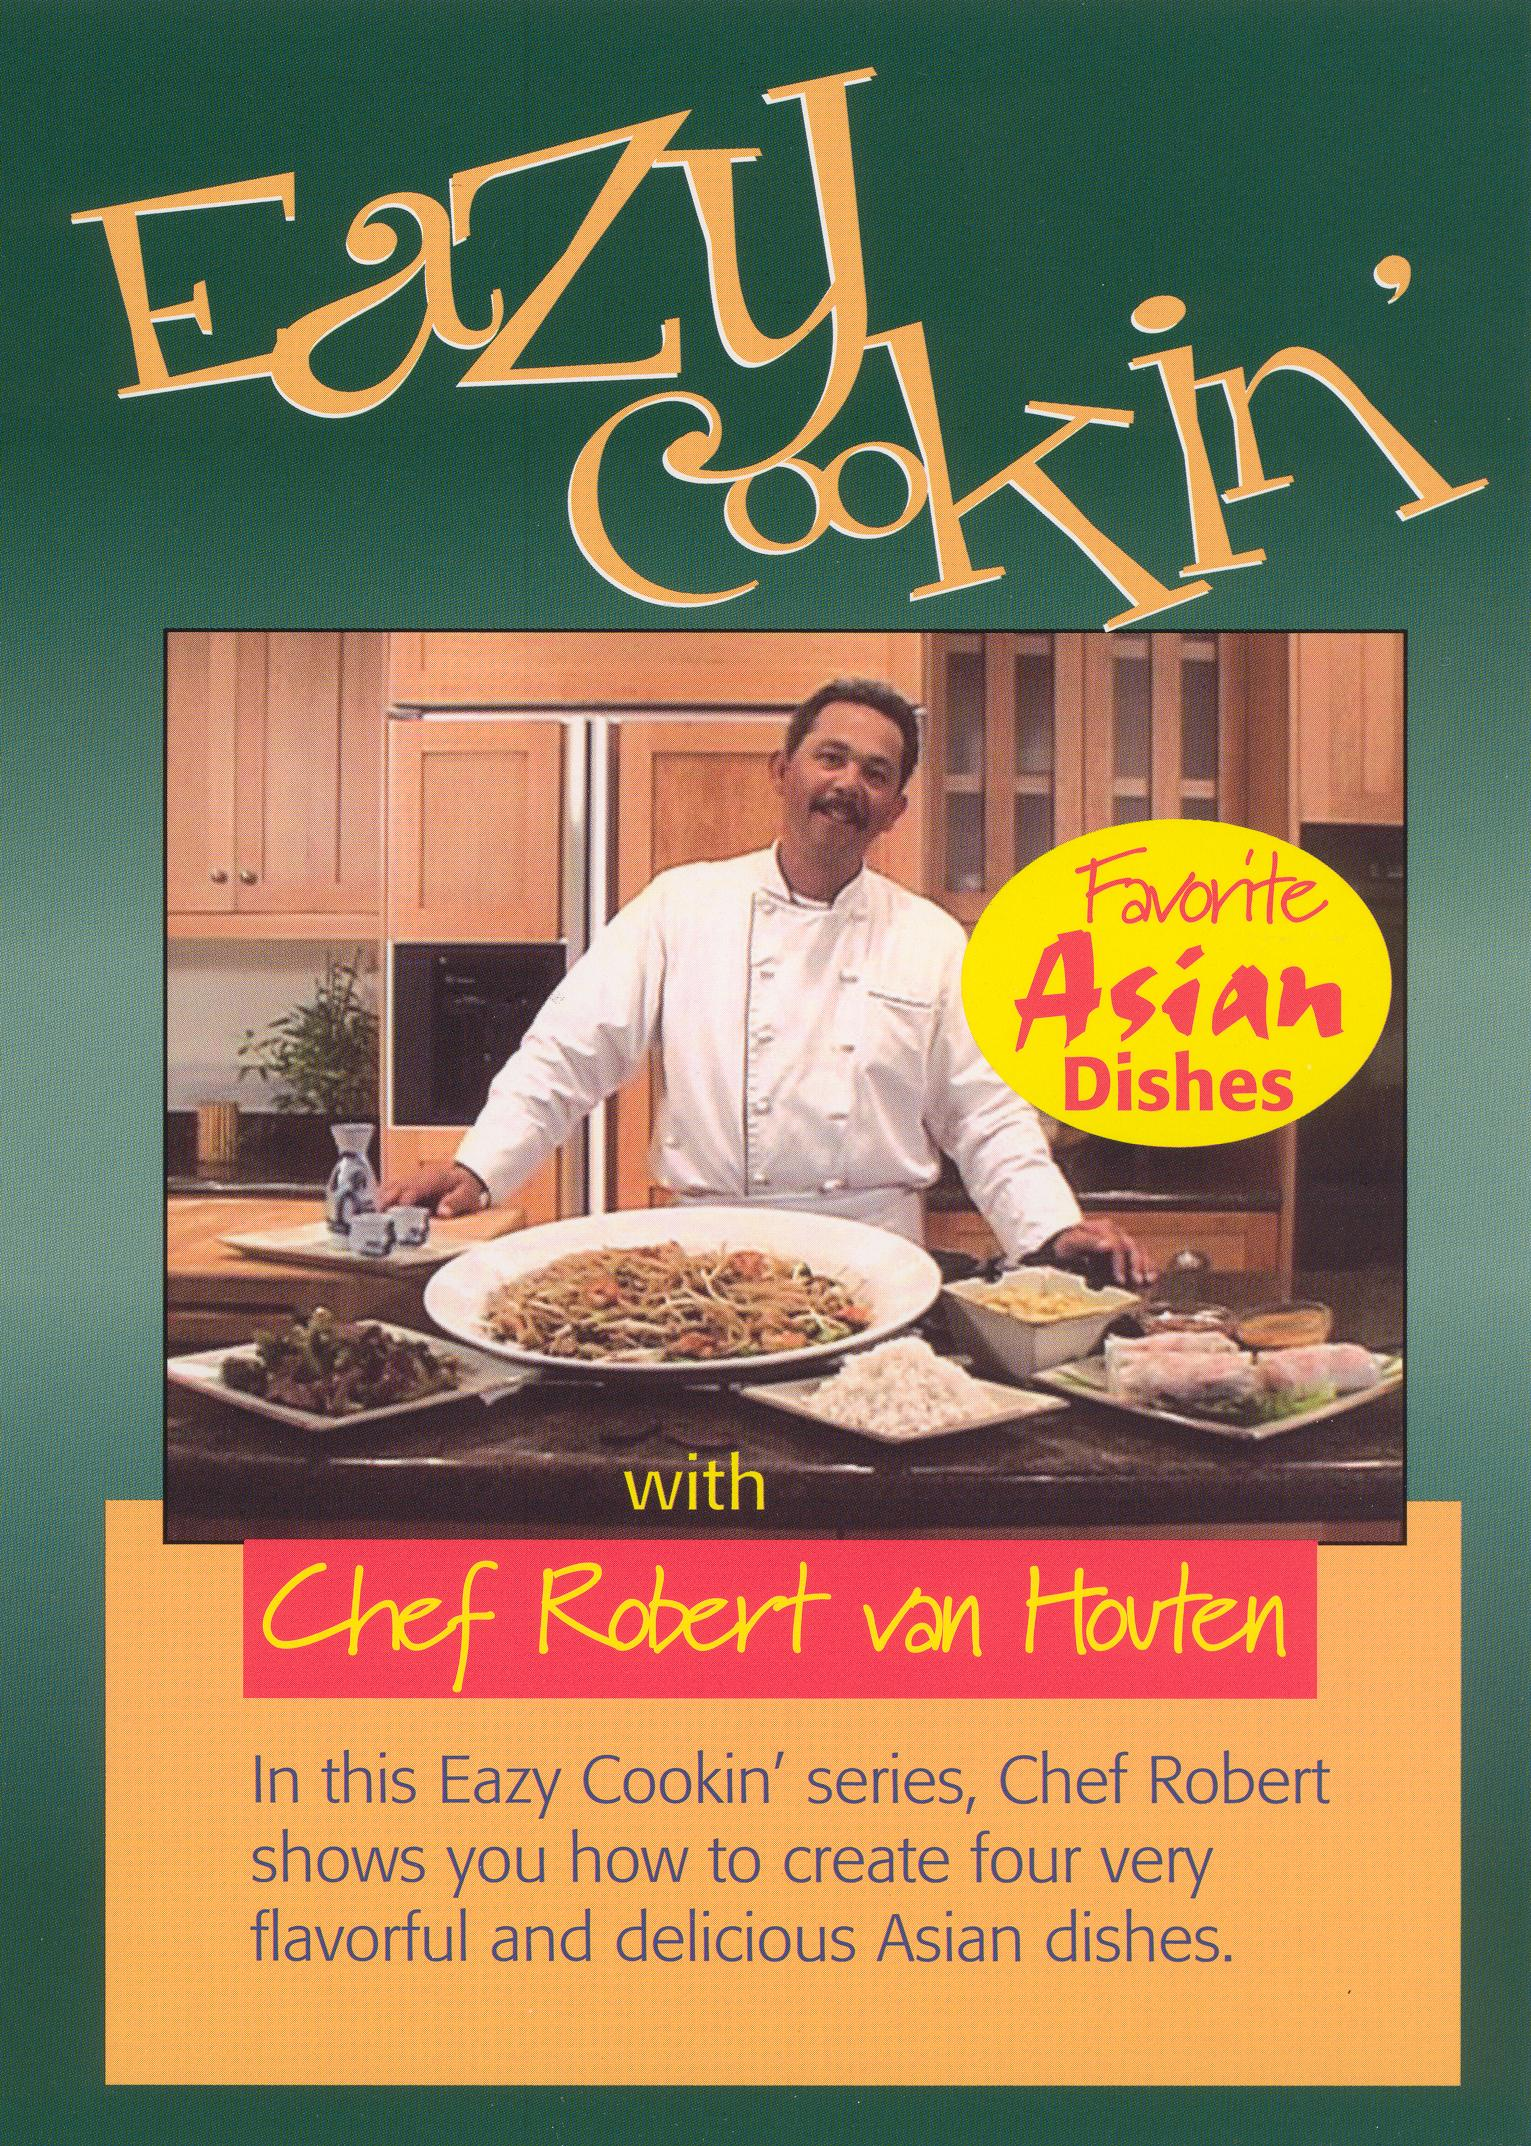 Eazy Cookin': Favorite Asian Dishes